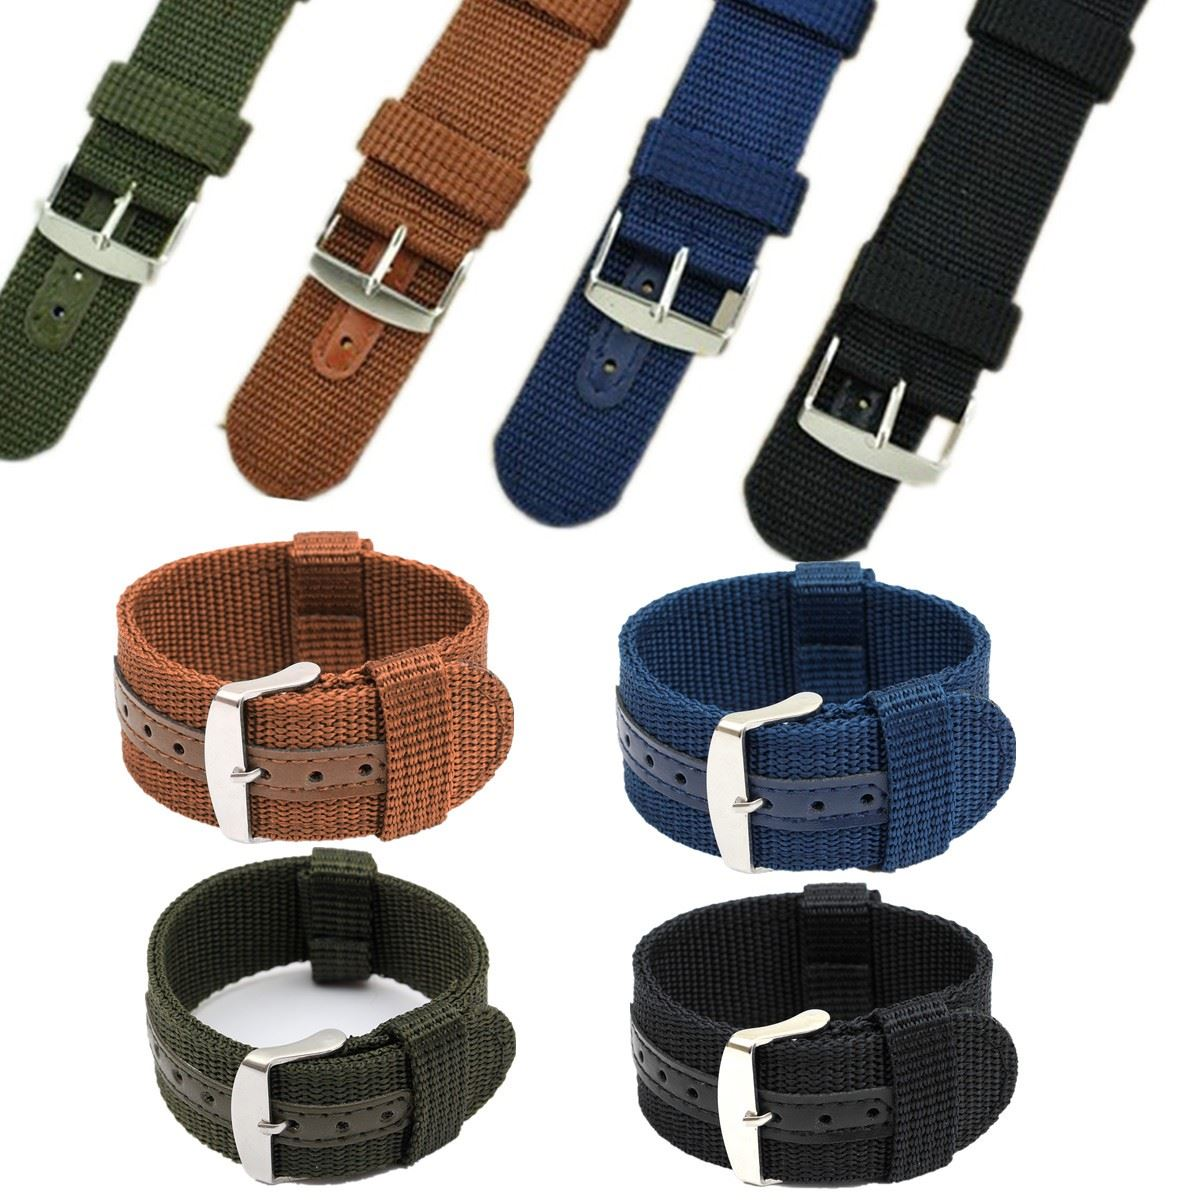 купить New Fashion Style 4 Colors Nylon Canvas Military Fabric Army Nylon Wrist WatchBand Watch Strap 18mm 20mm 22mm 24mm Hot Sale по цене 170.62 рублей